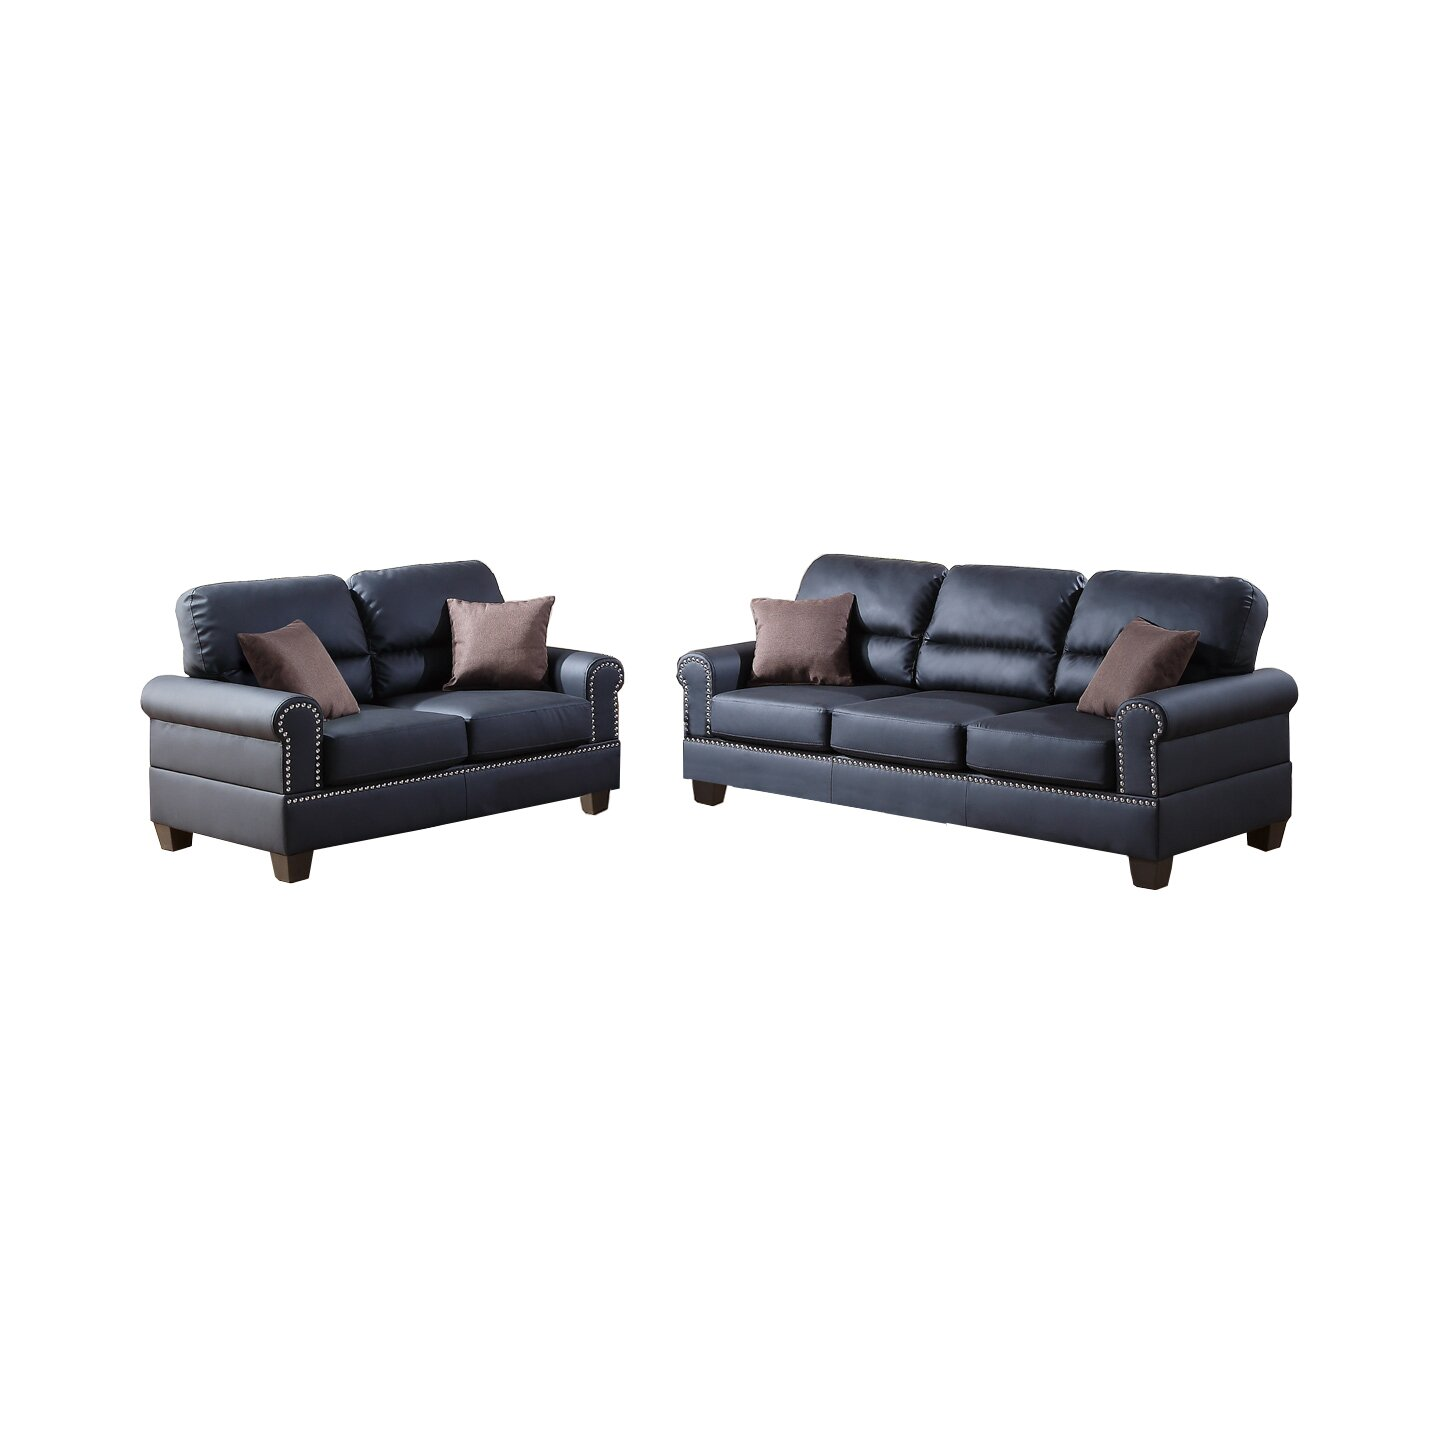 Poundex bobkona shelton 2 piece sofa and loveseat set for 2 piece furniture set